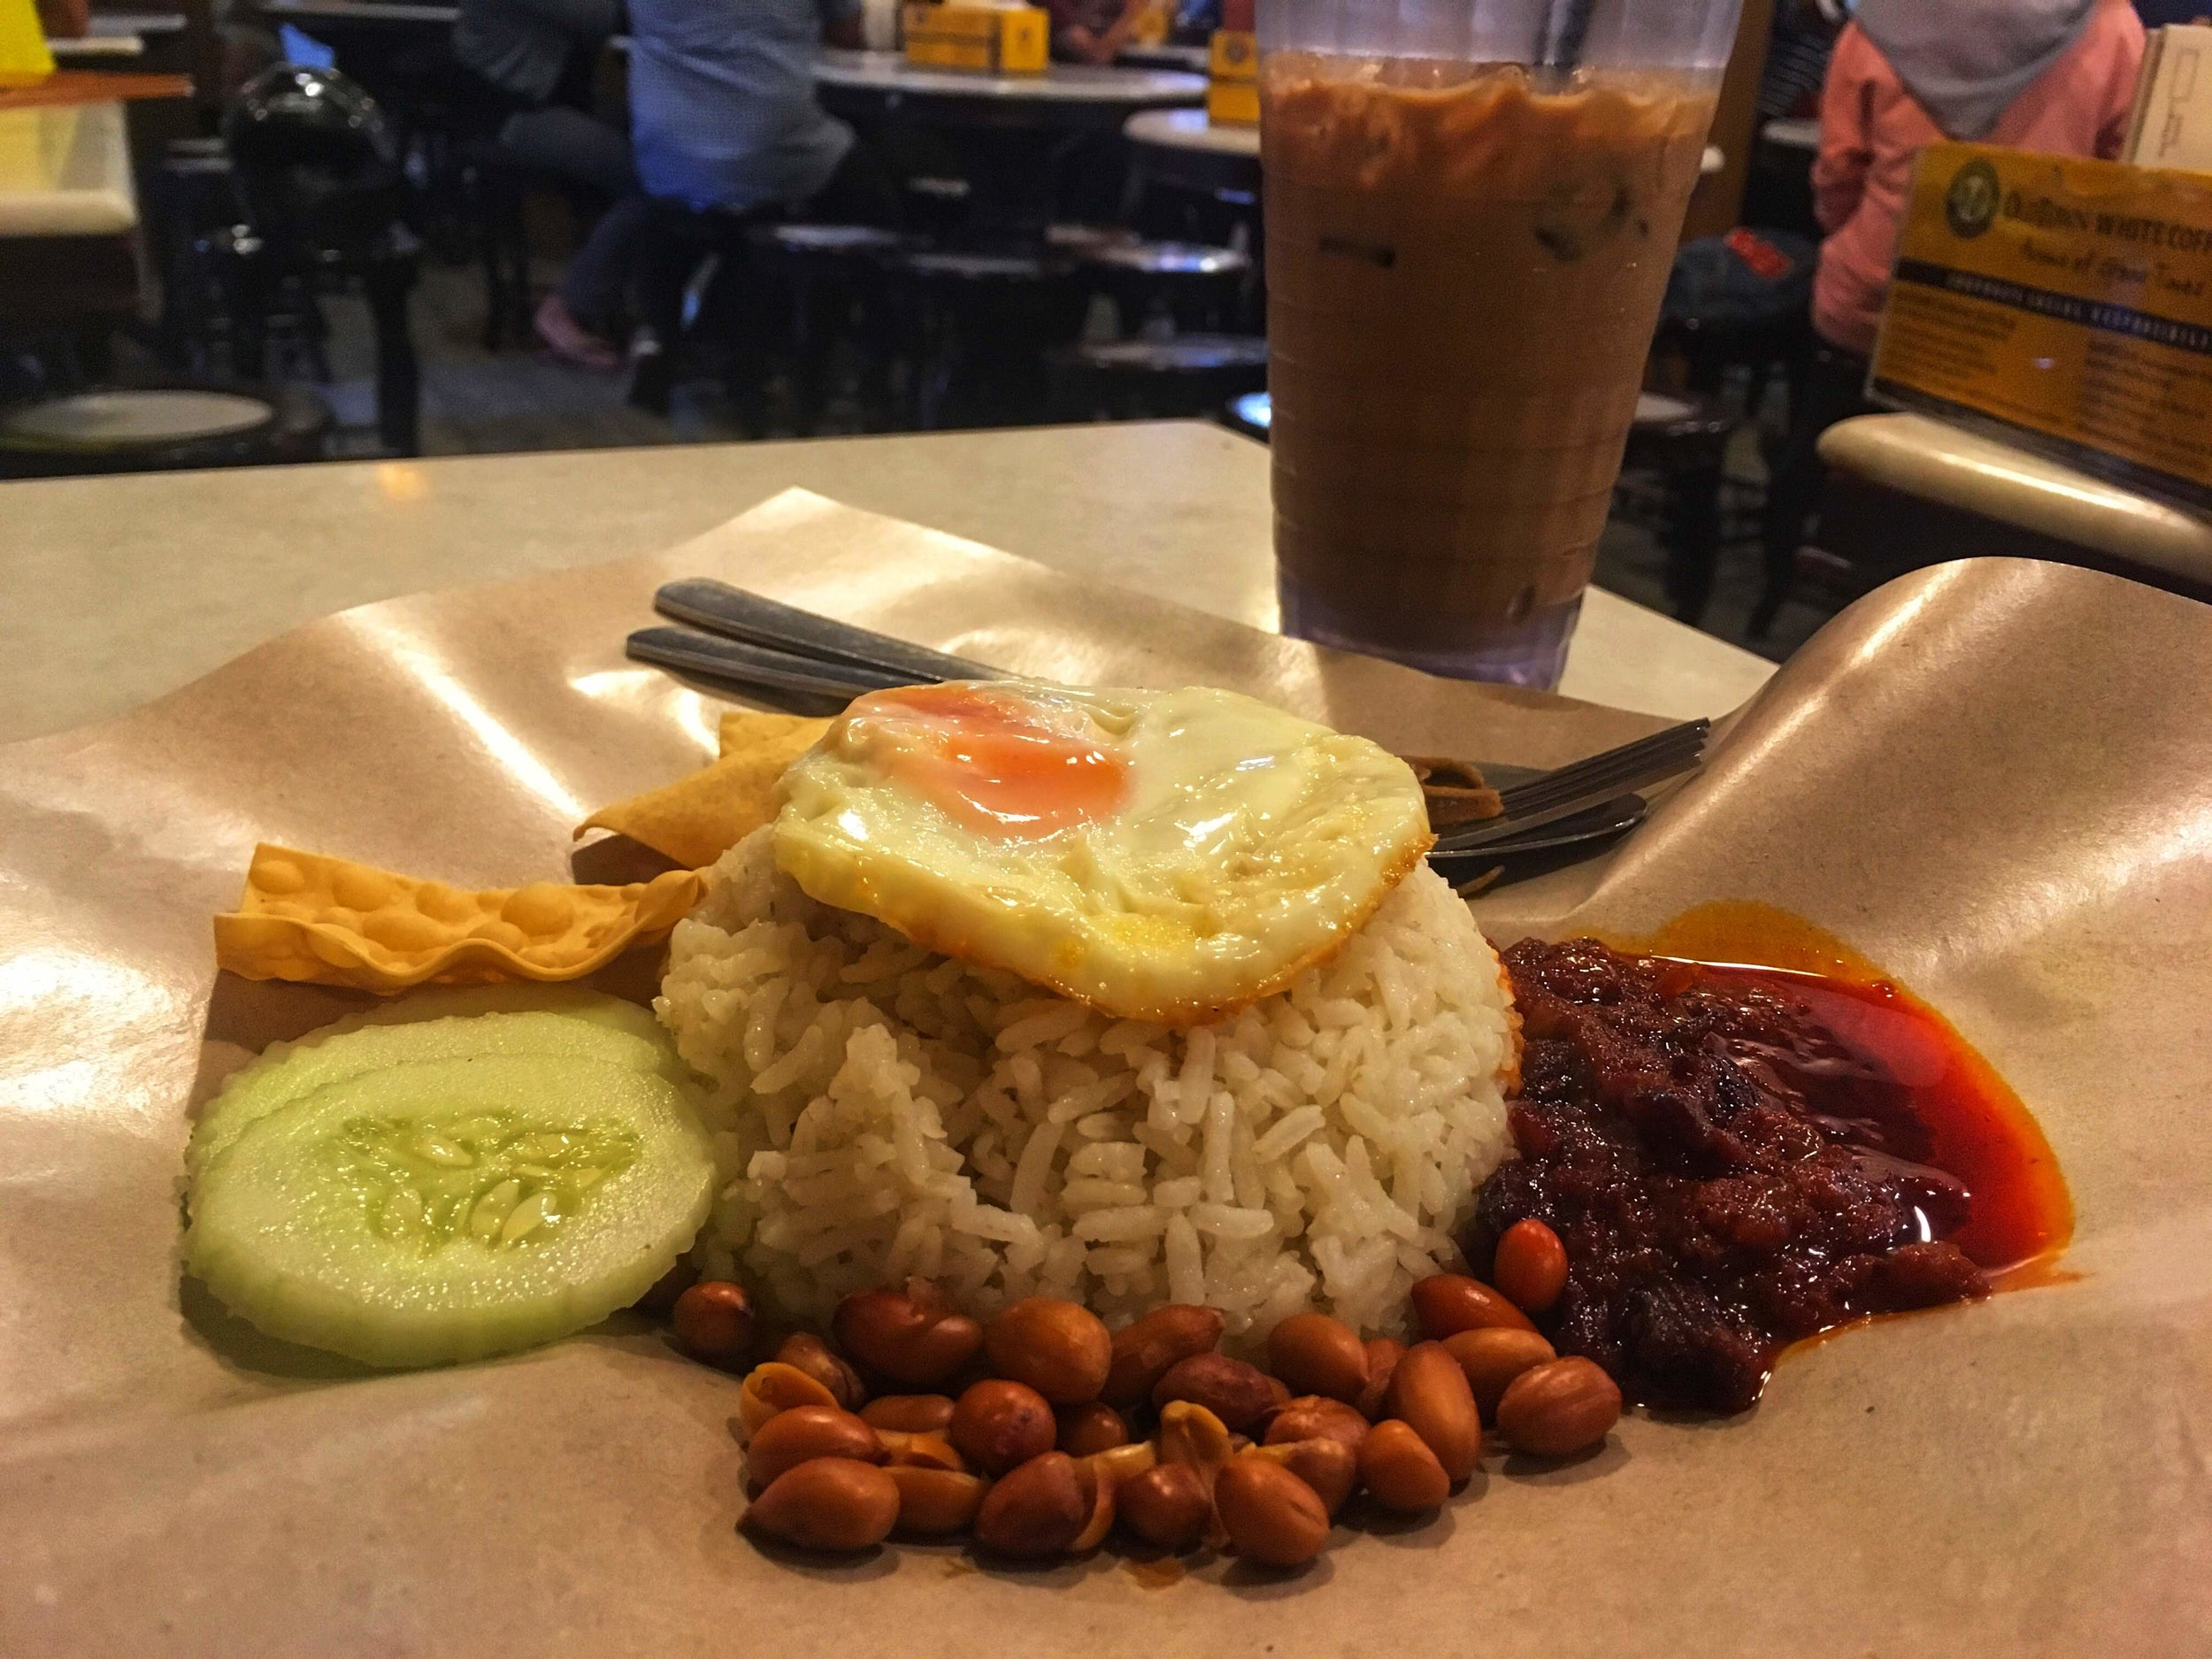 nasi lemak, the national dish of Malaysia